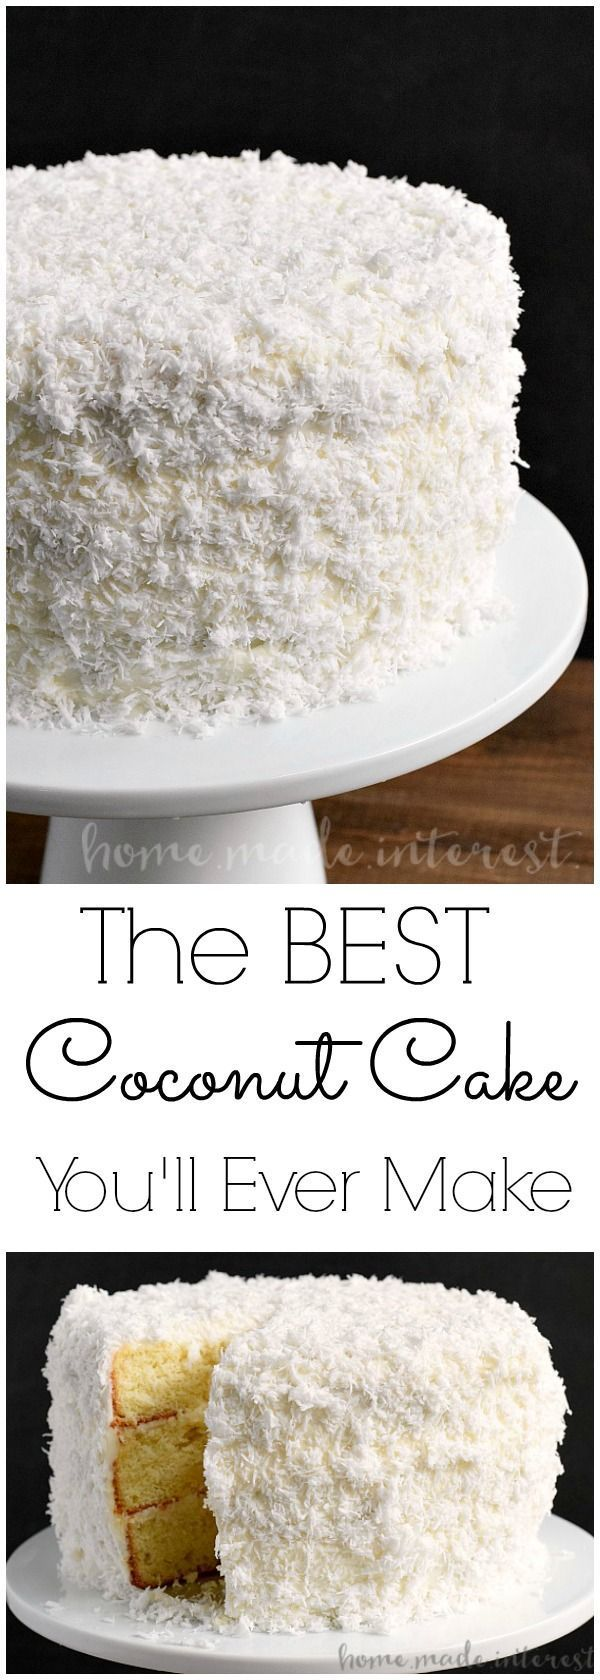 Coconut Cake This is the best coconut cake recipe I've ever made. This easy coconut cake recipe is moist and delicious and uses fresh coconut! This traditional southern recipe is a delicious coconut cake that makes a perfect Easter dessert, Christmas de